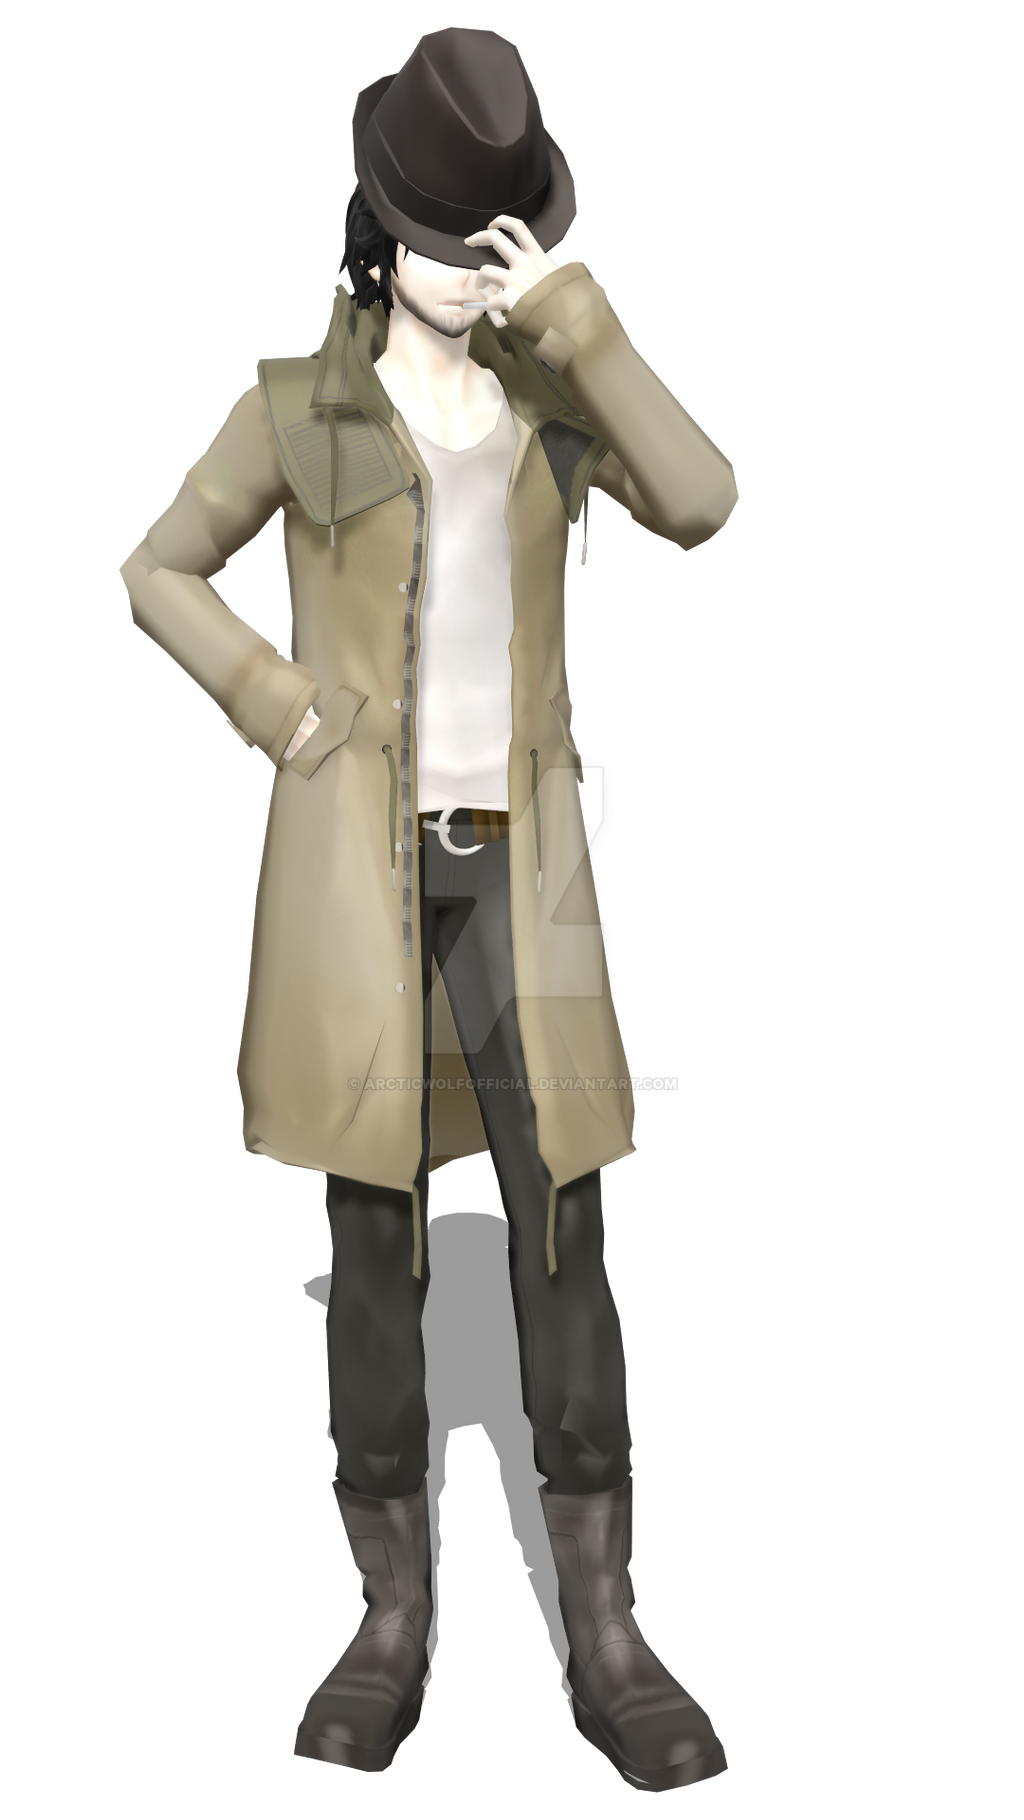 [MMDxYS] Journalist (Alpha) by ArcticWolfOfficial